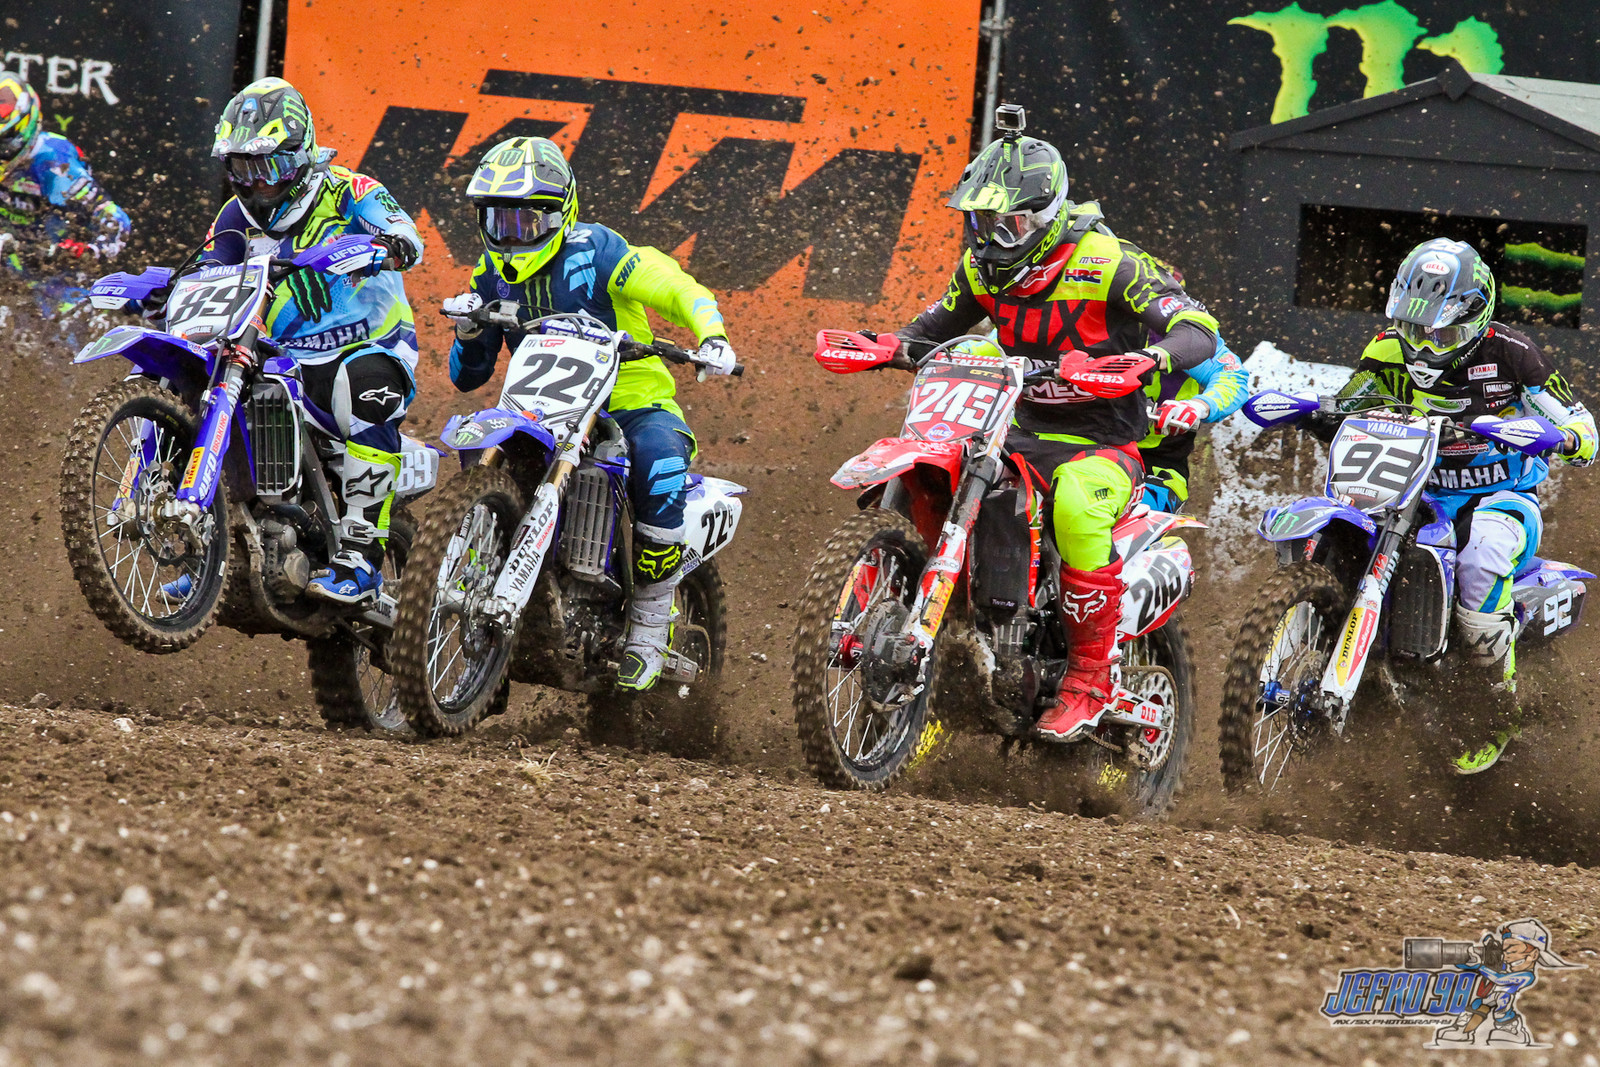 MXGP Start - Photo Gallery: MXGP of Great Britain - Motocross Pictures - Vital MX